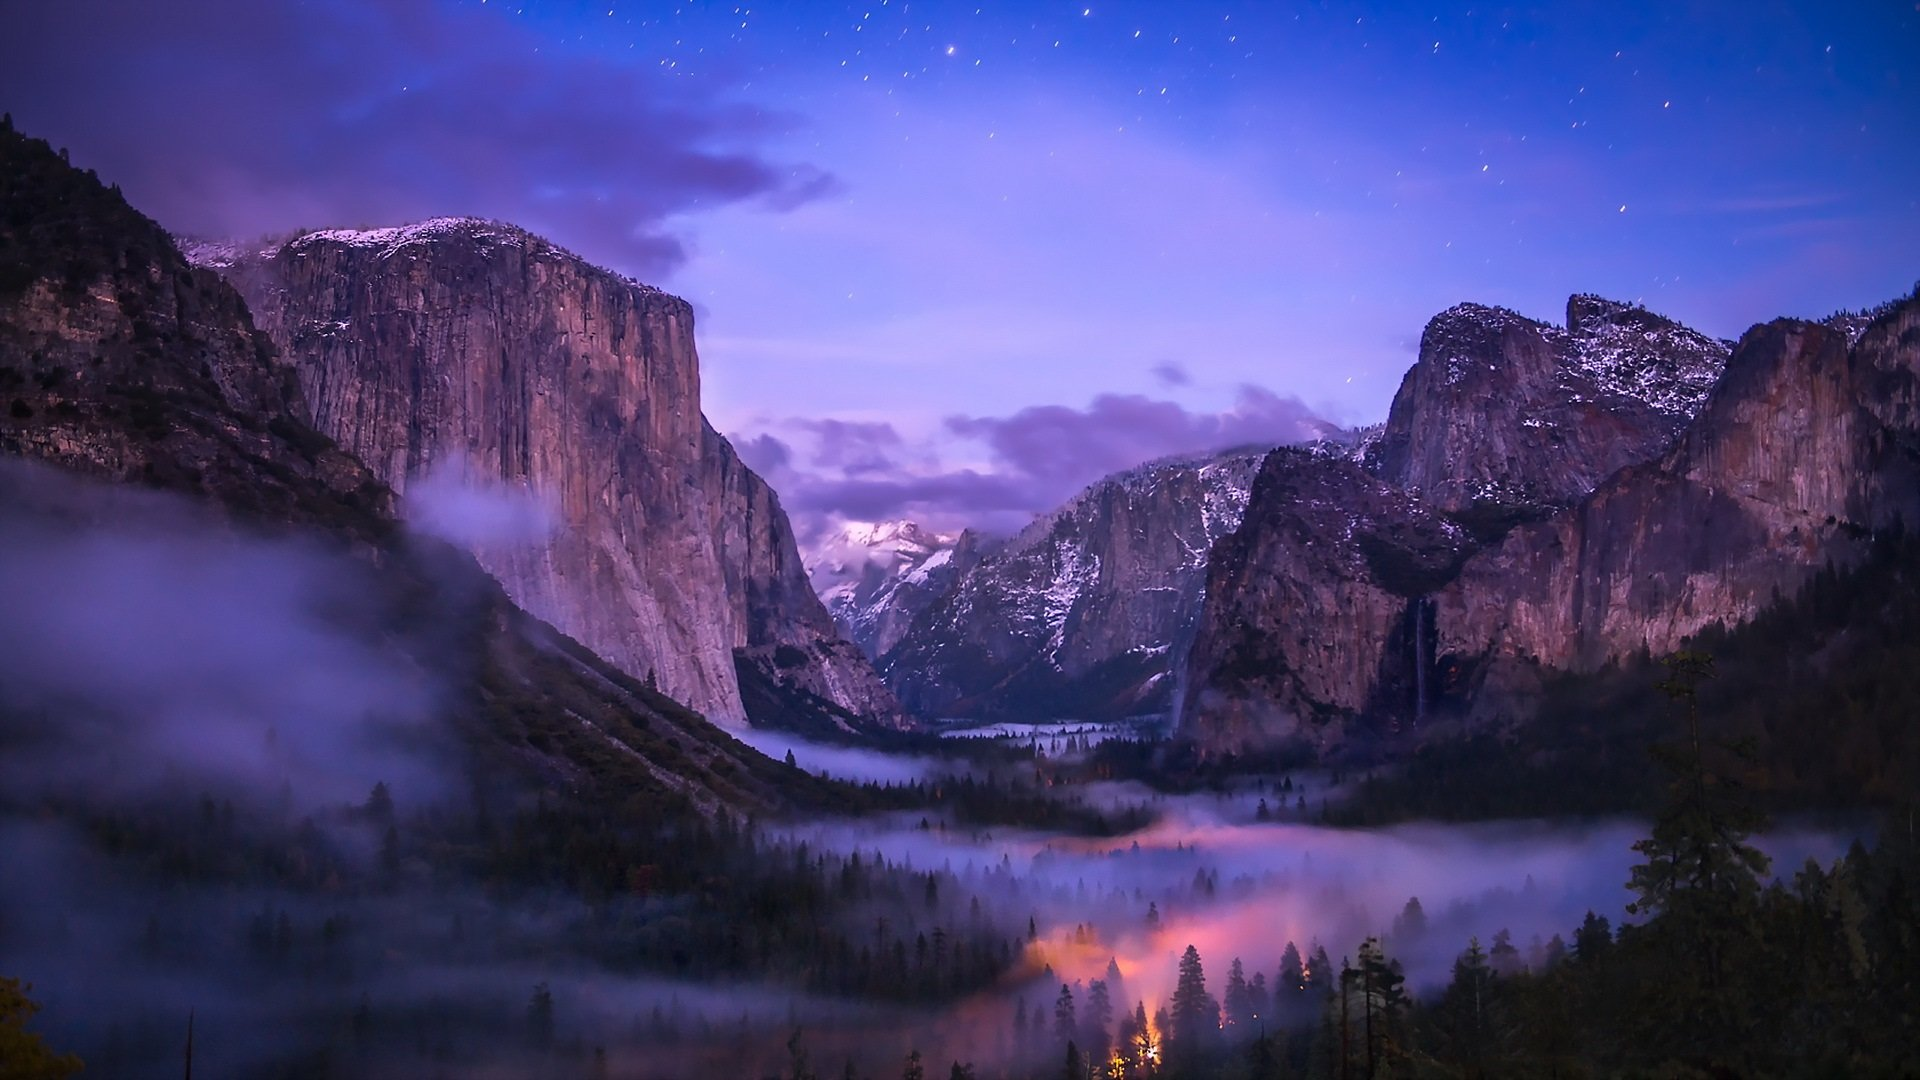 Yosemite National Park wallpaper by MariJane RevelWallpapersnet 1920x1080